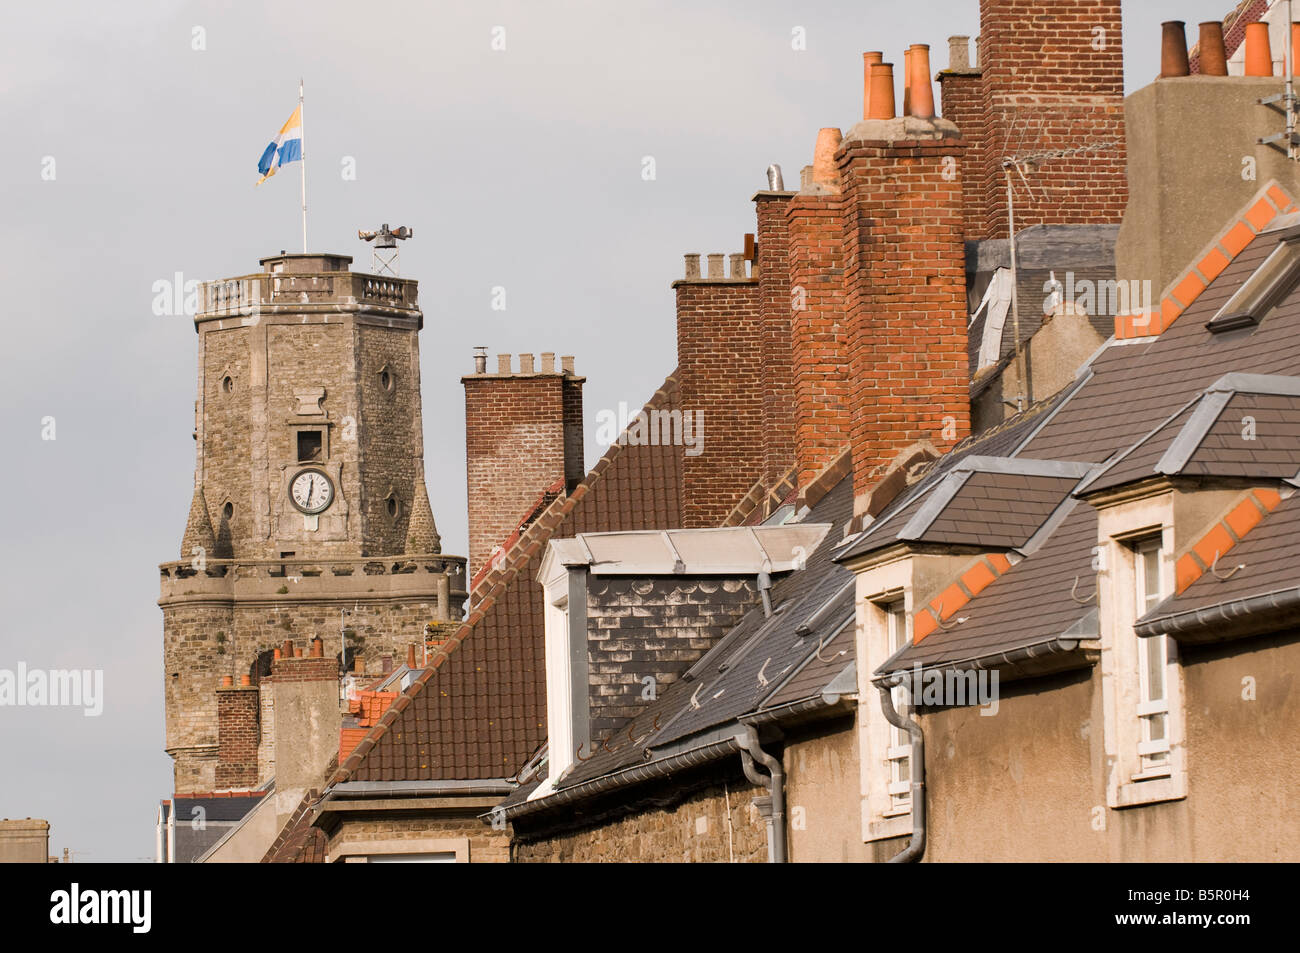 Old Town Belfry Tower and roof tops Boulogne-sur-Mer, Nord-Pas de Calais, France - Stock Image